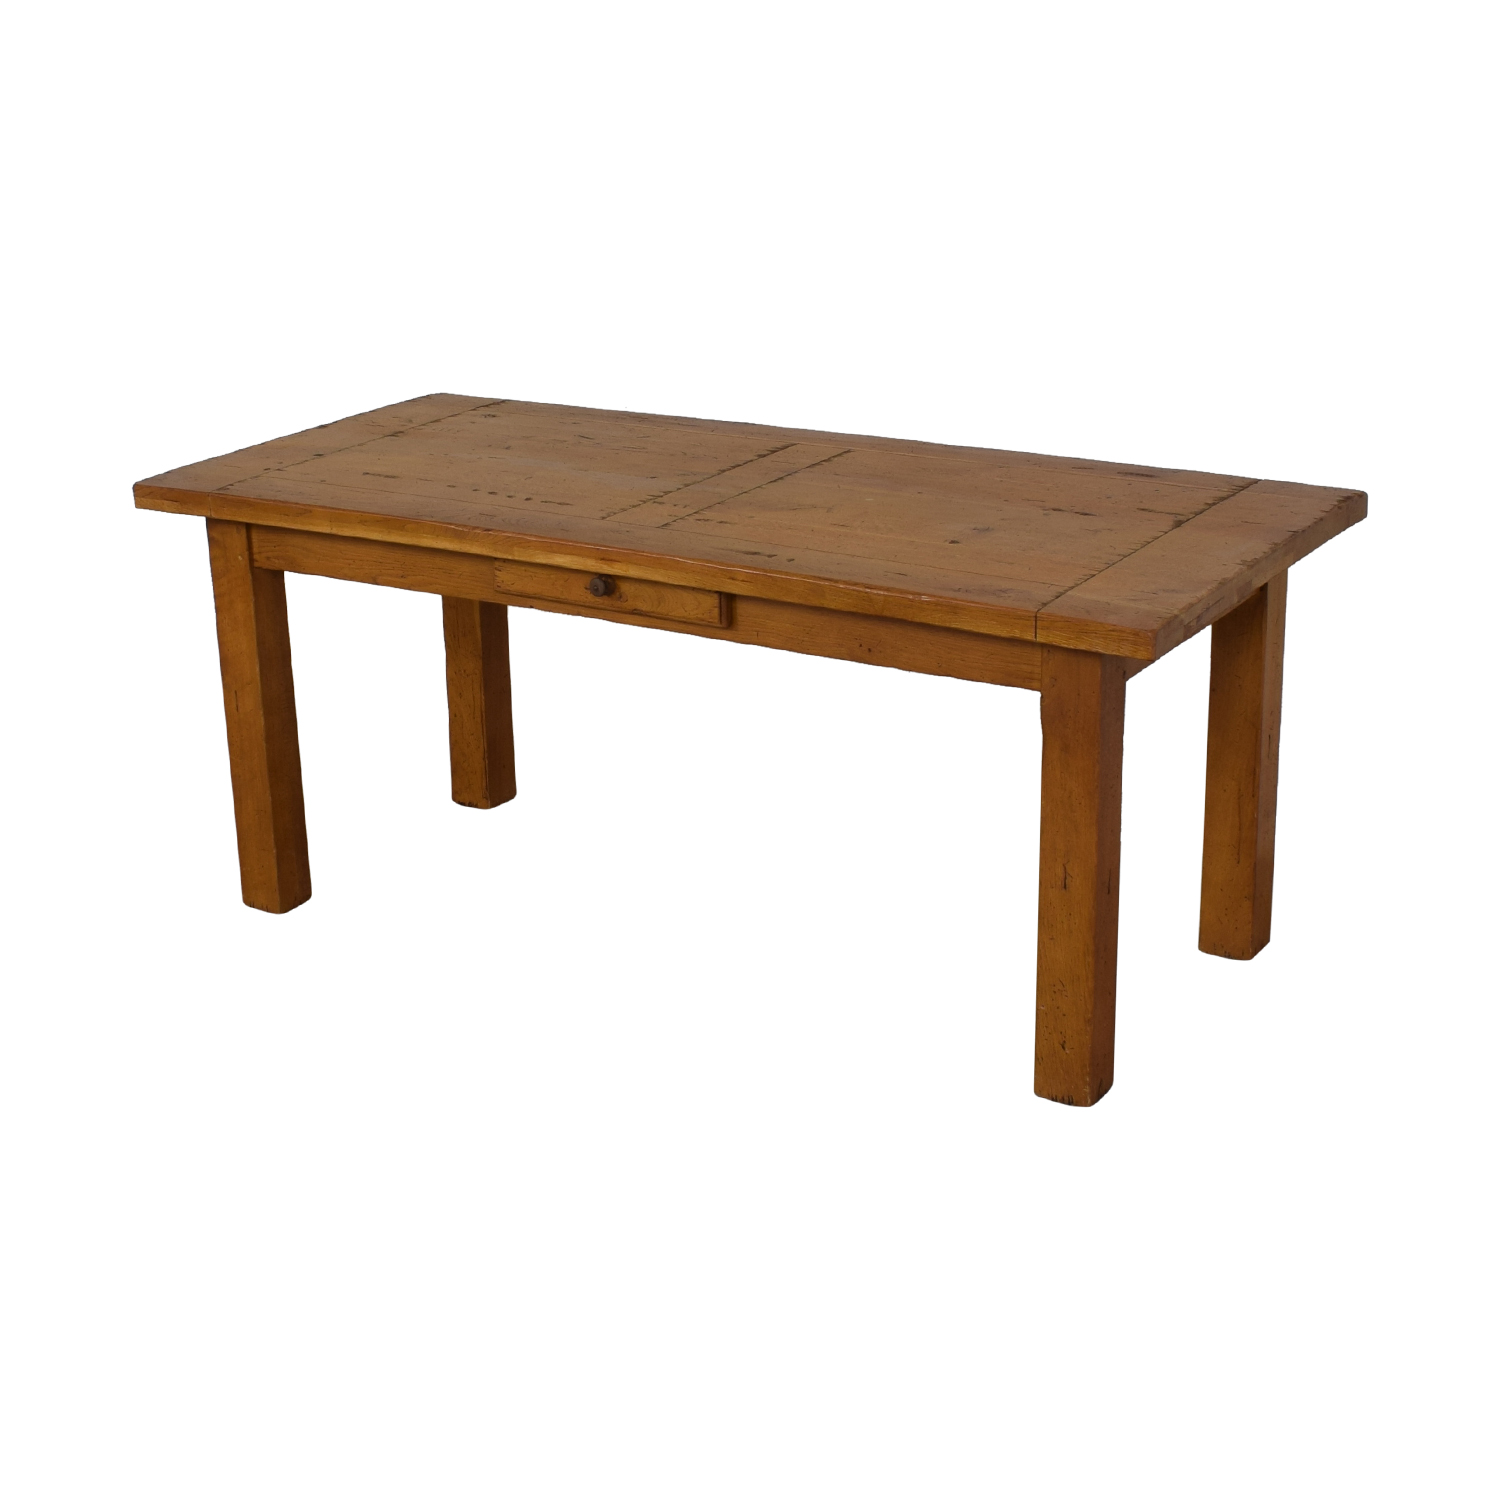 Crate & Barrel Crate & Barrel French Farm Dining Table